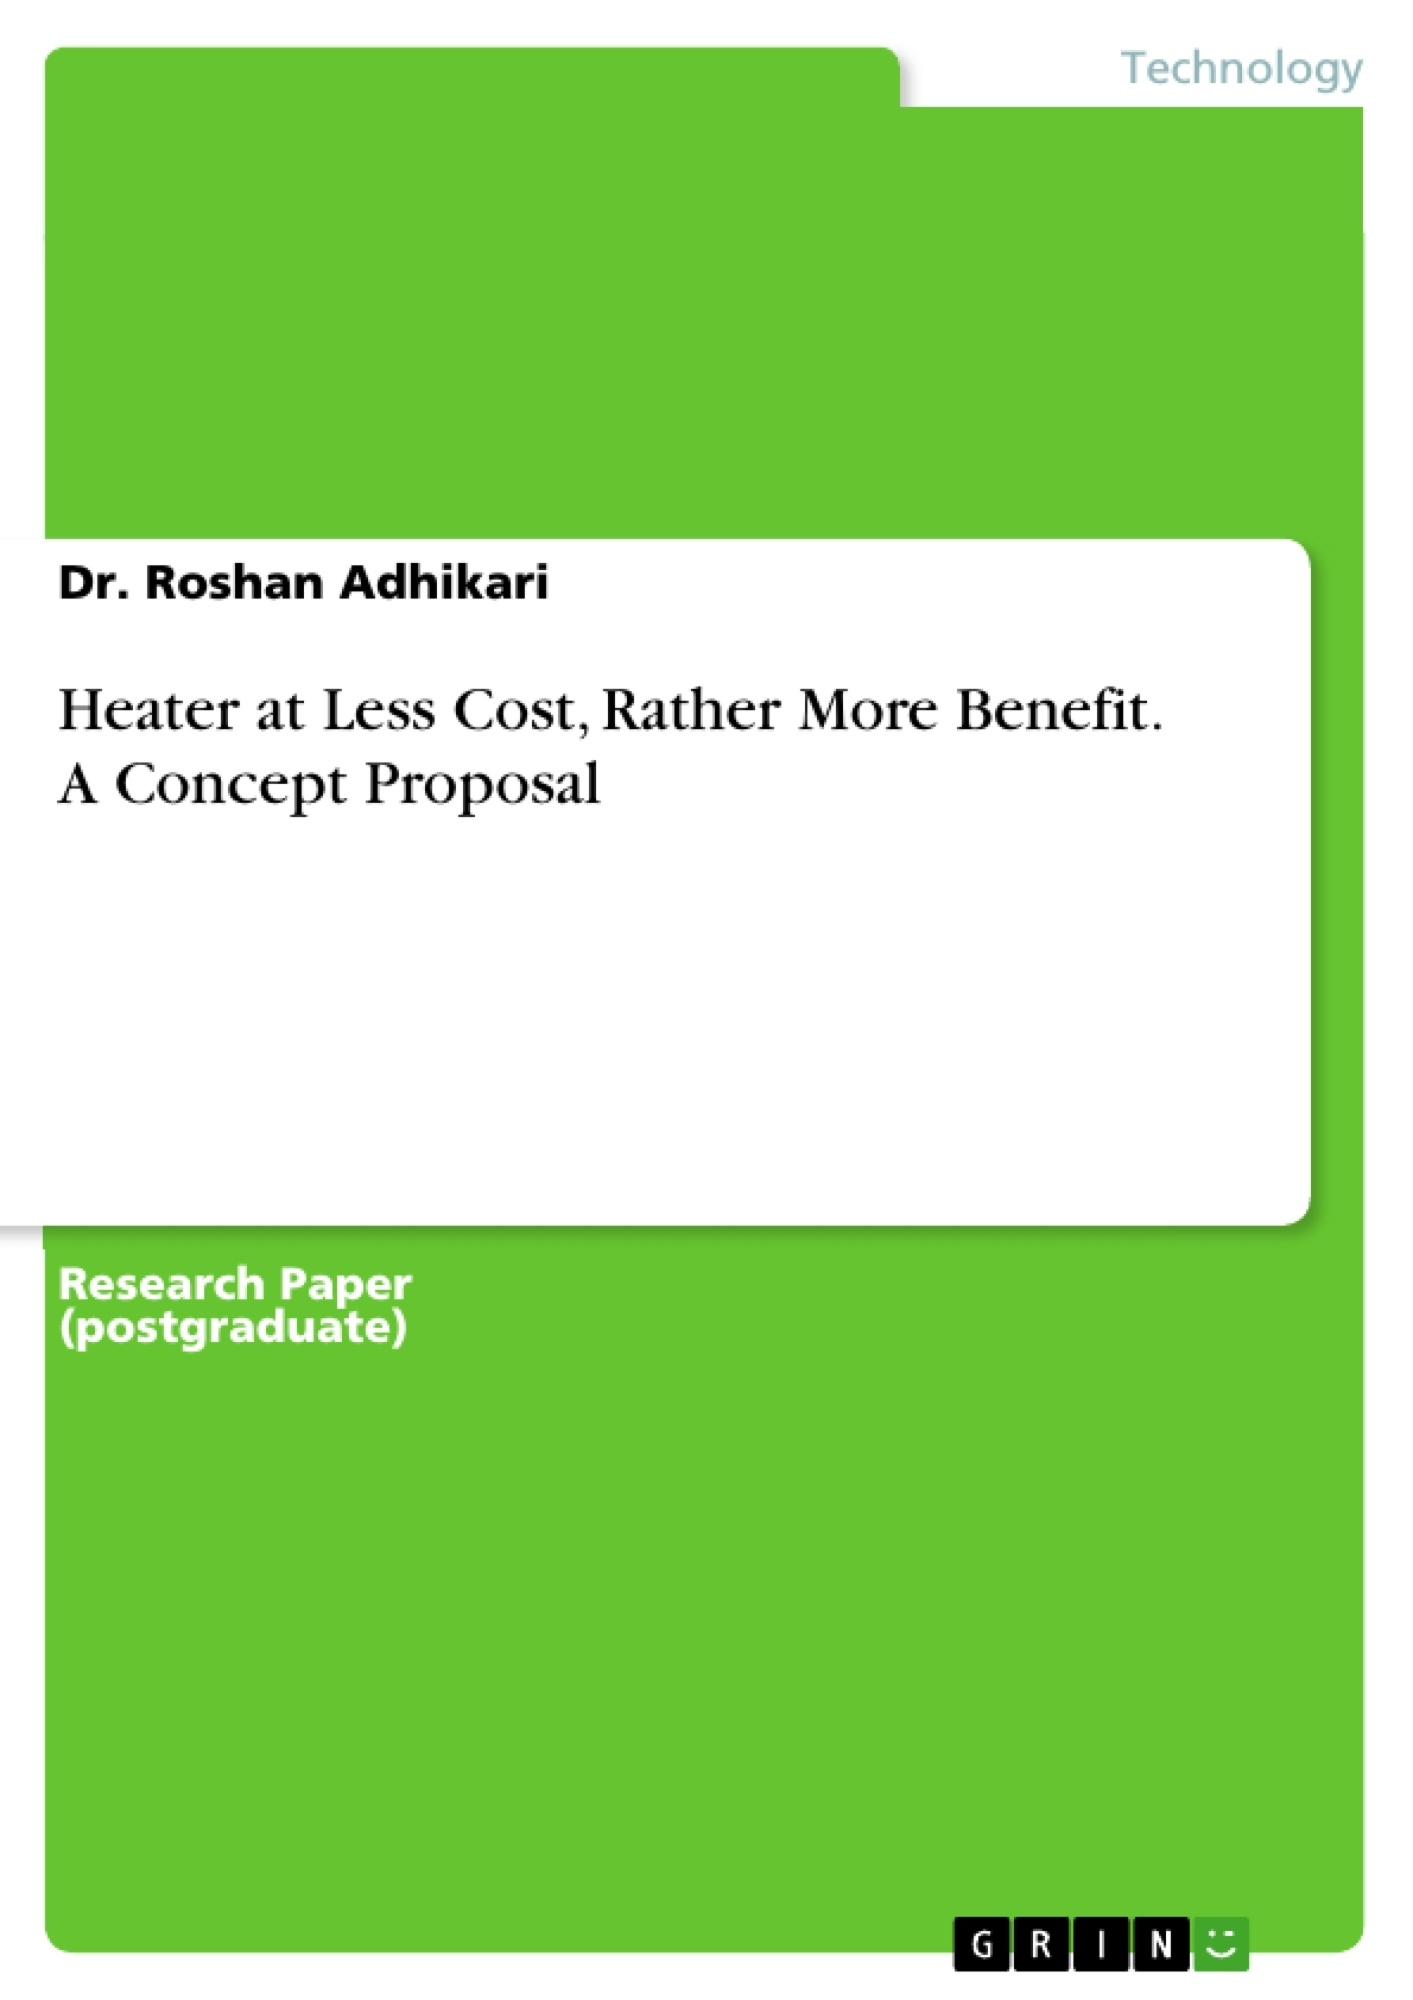 Title: Heater at Less Cost, Rather More Benefit. A Concept Proposal